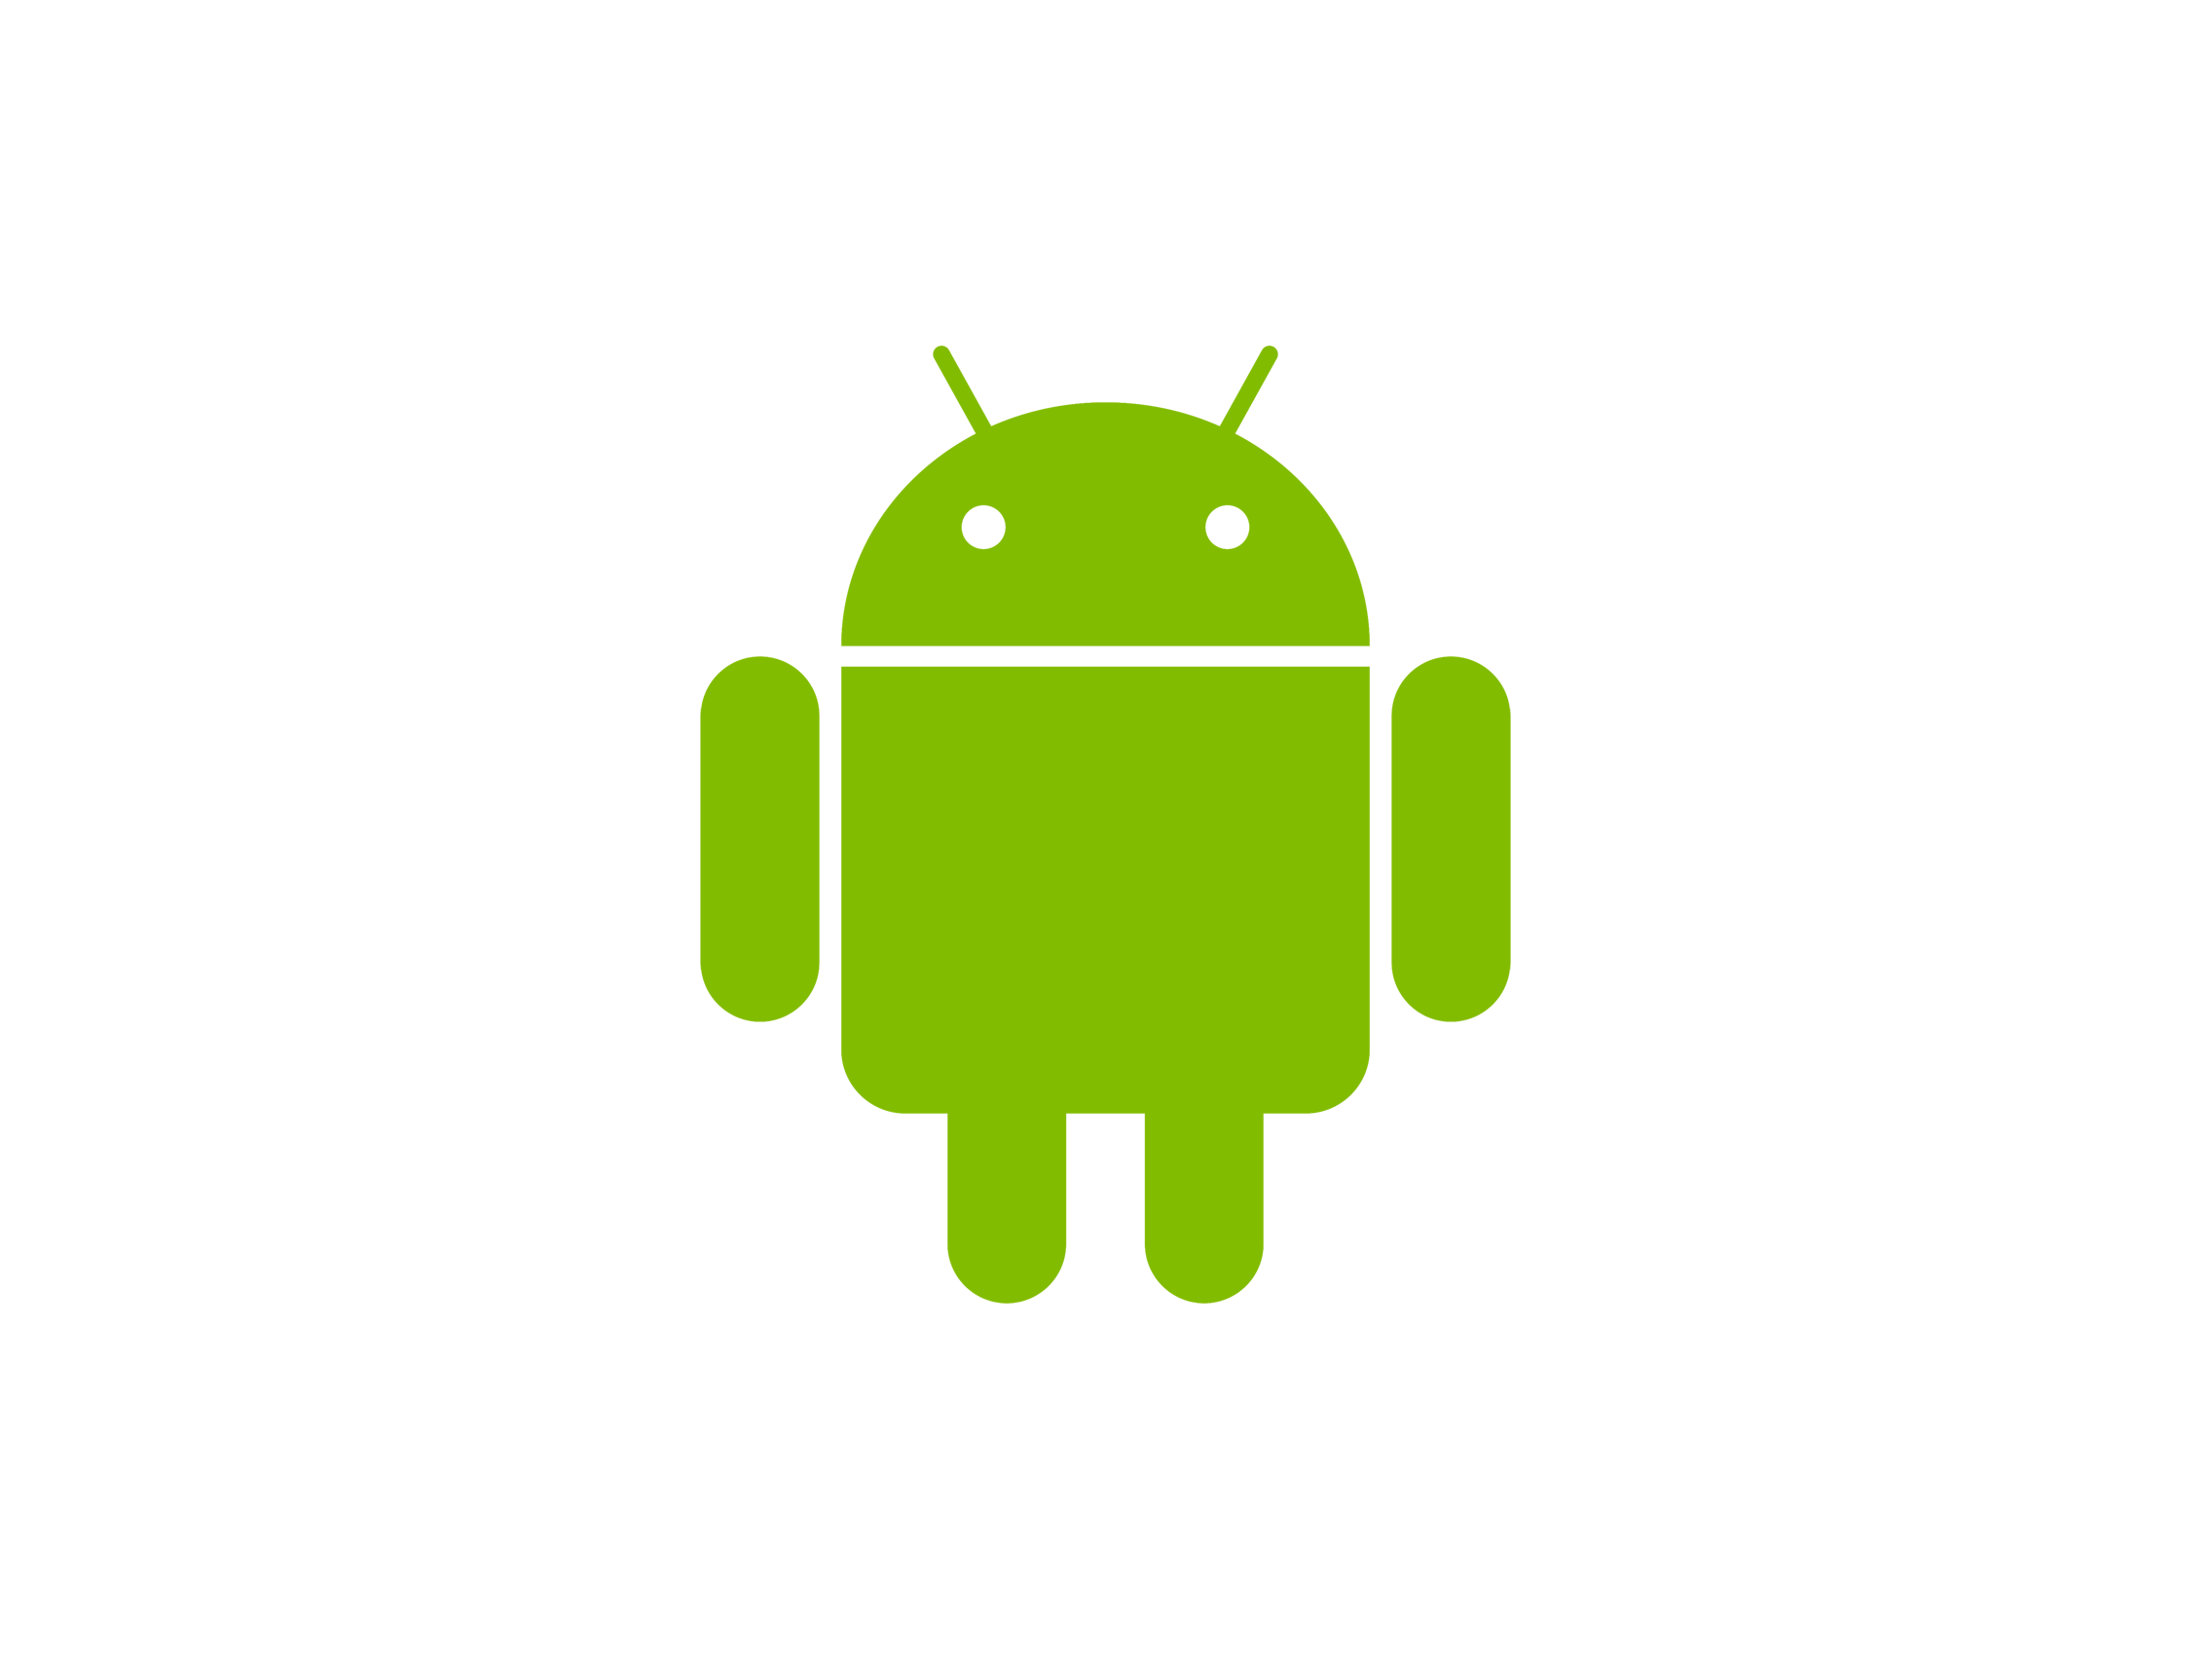 android logo #12377